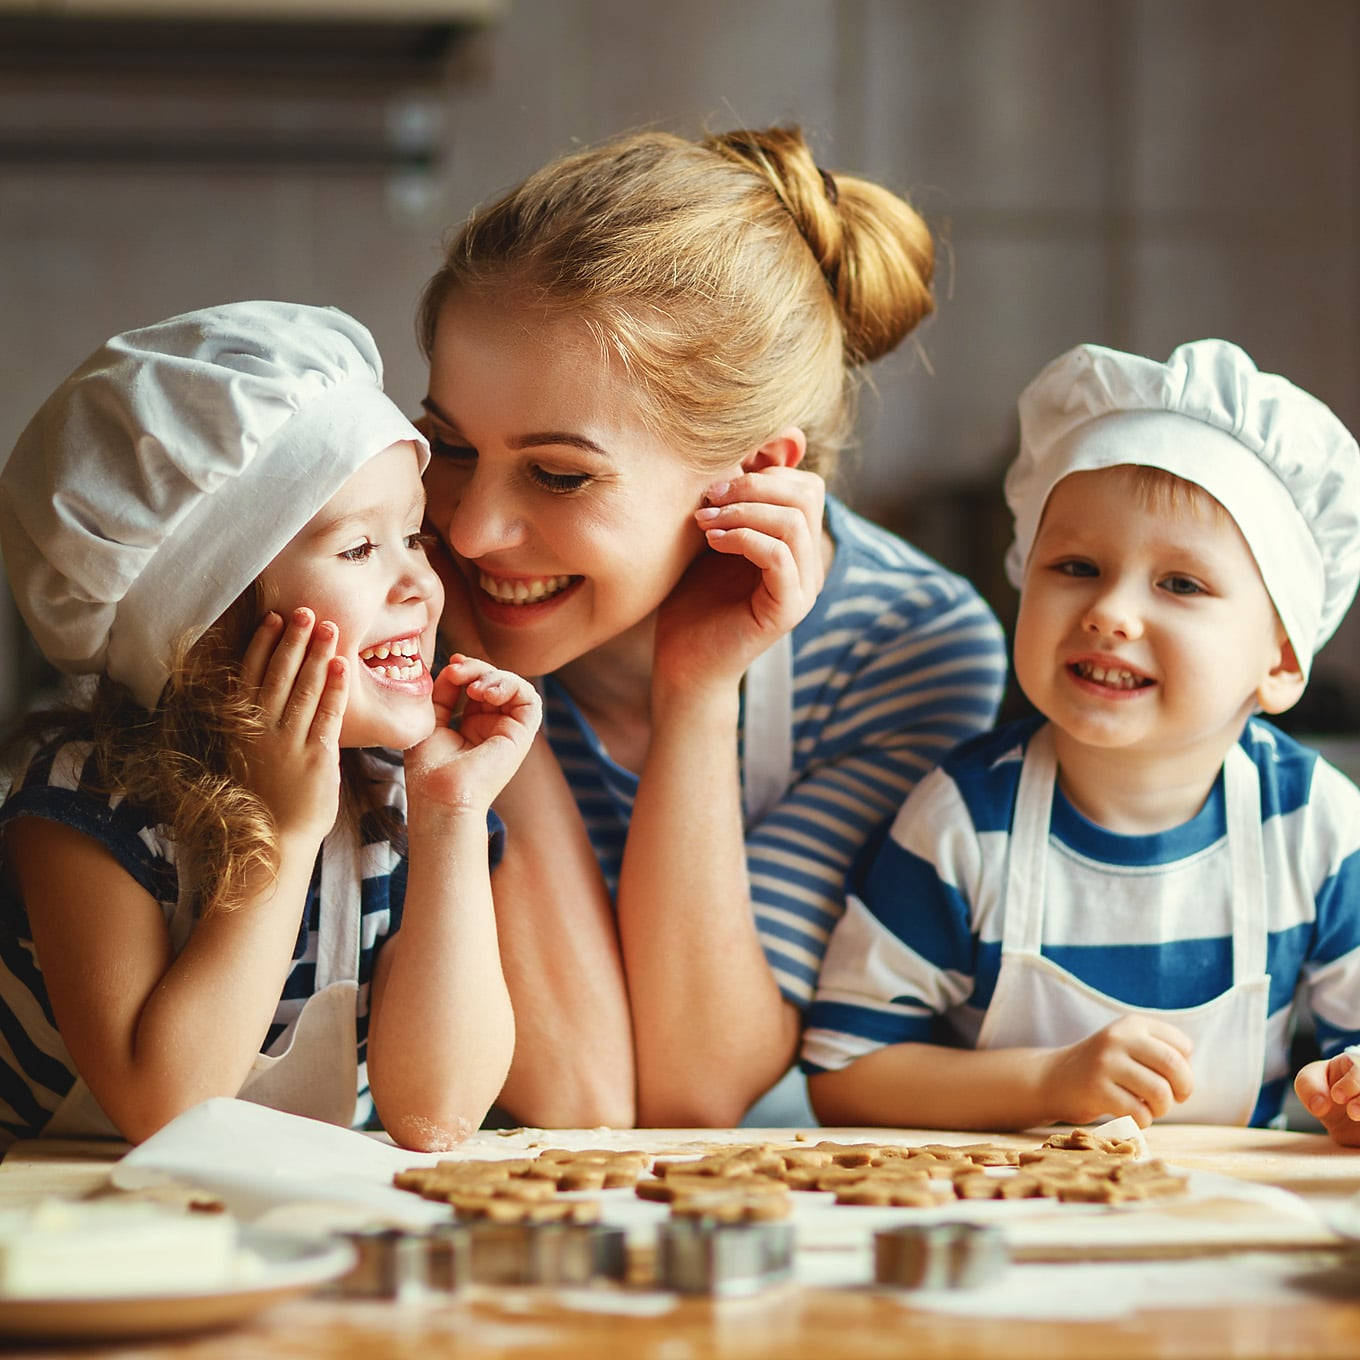 Whether dessert, dinner, breakfast, or lunch, cooking with kids is fun and has many positive benefits for both parent and child.